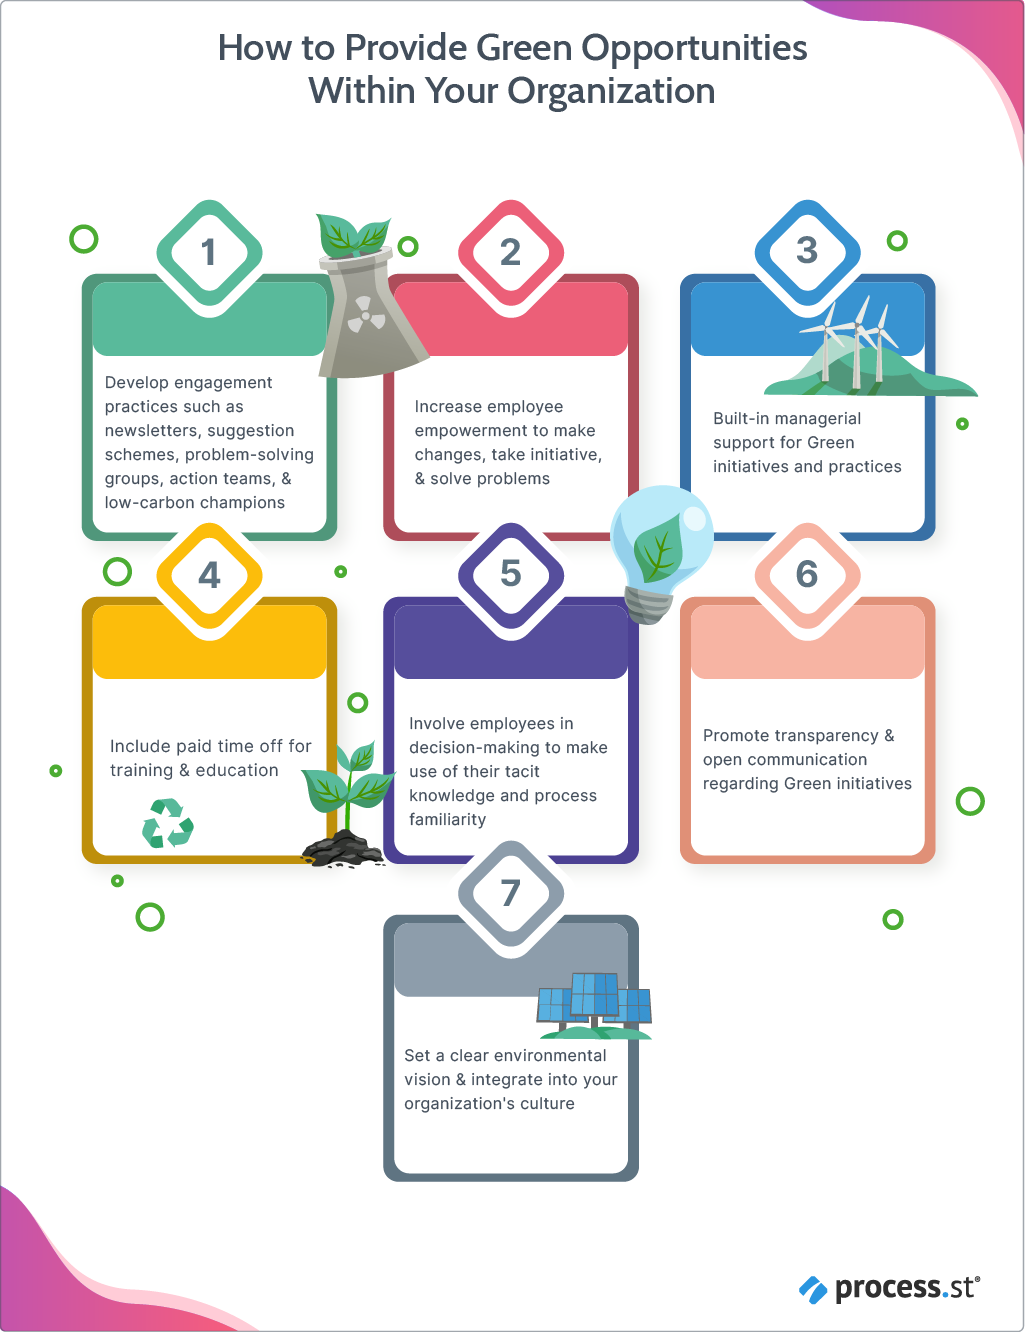 How to Provide Green Opportunities Within Your Organization